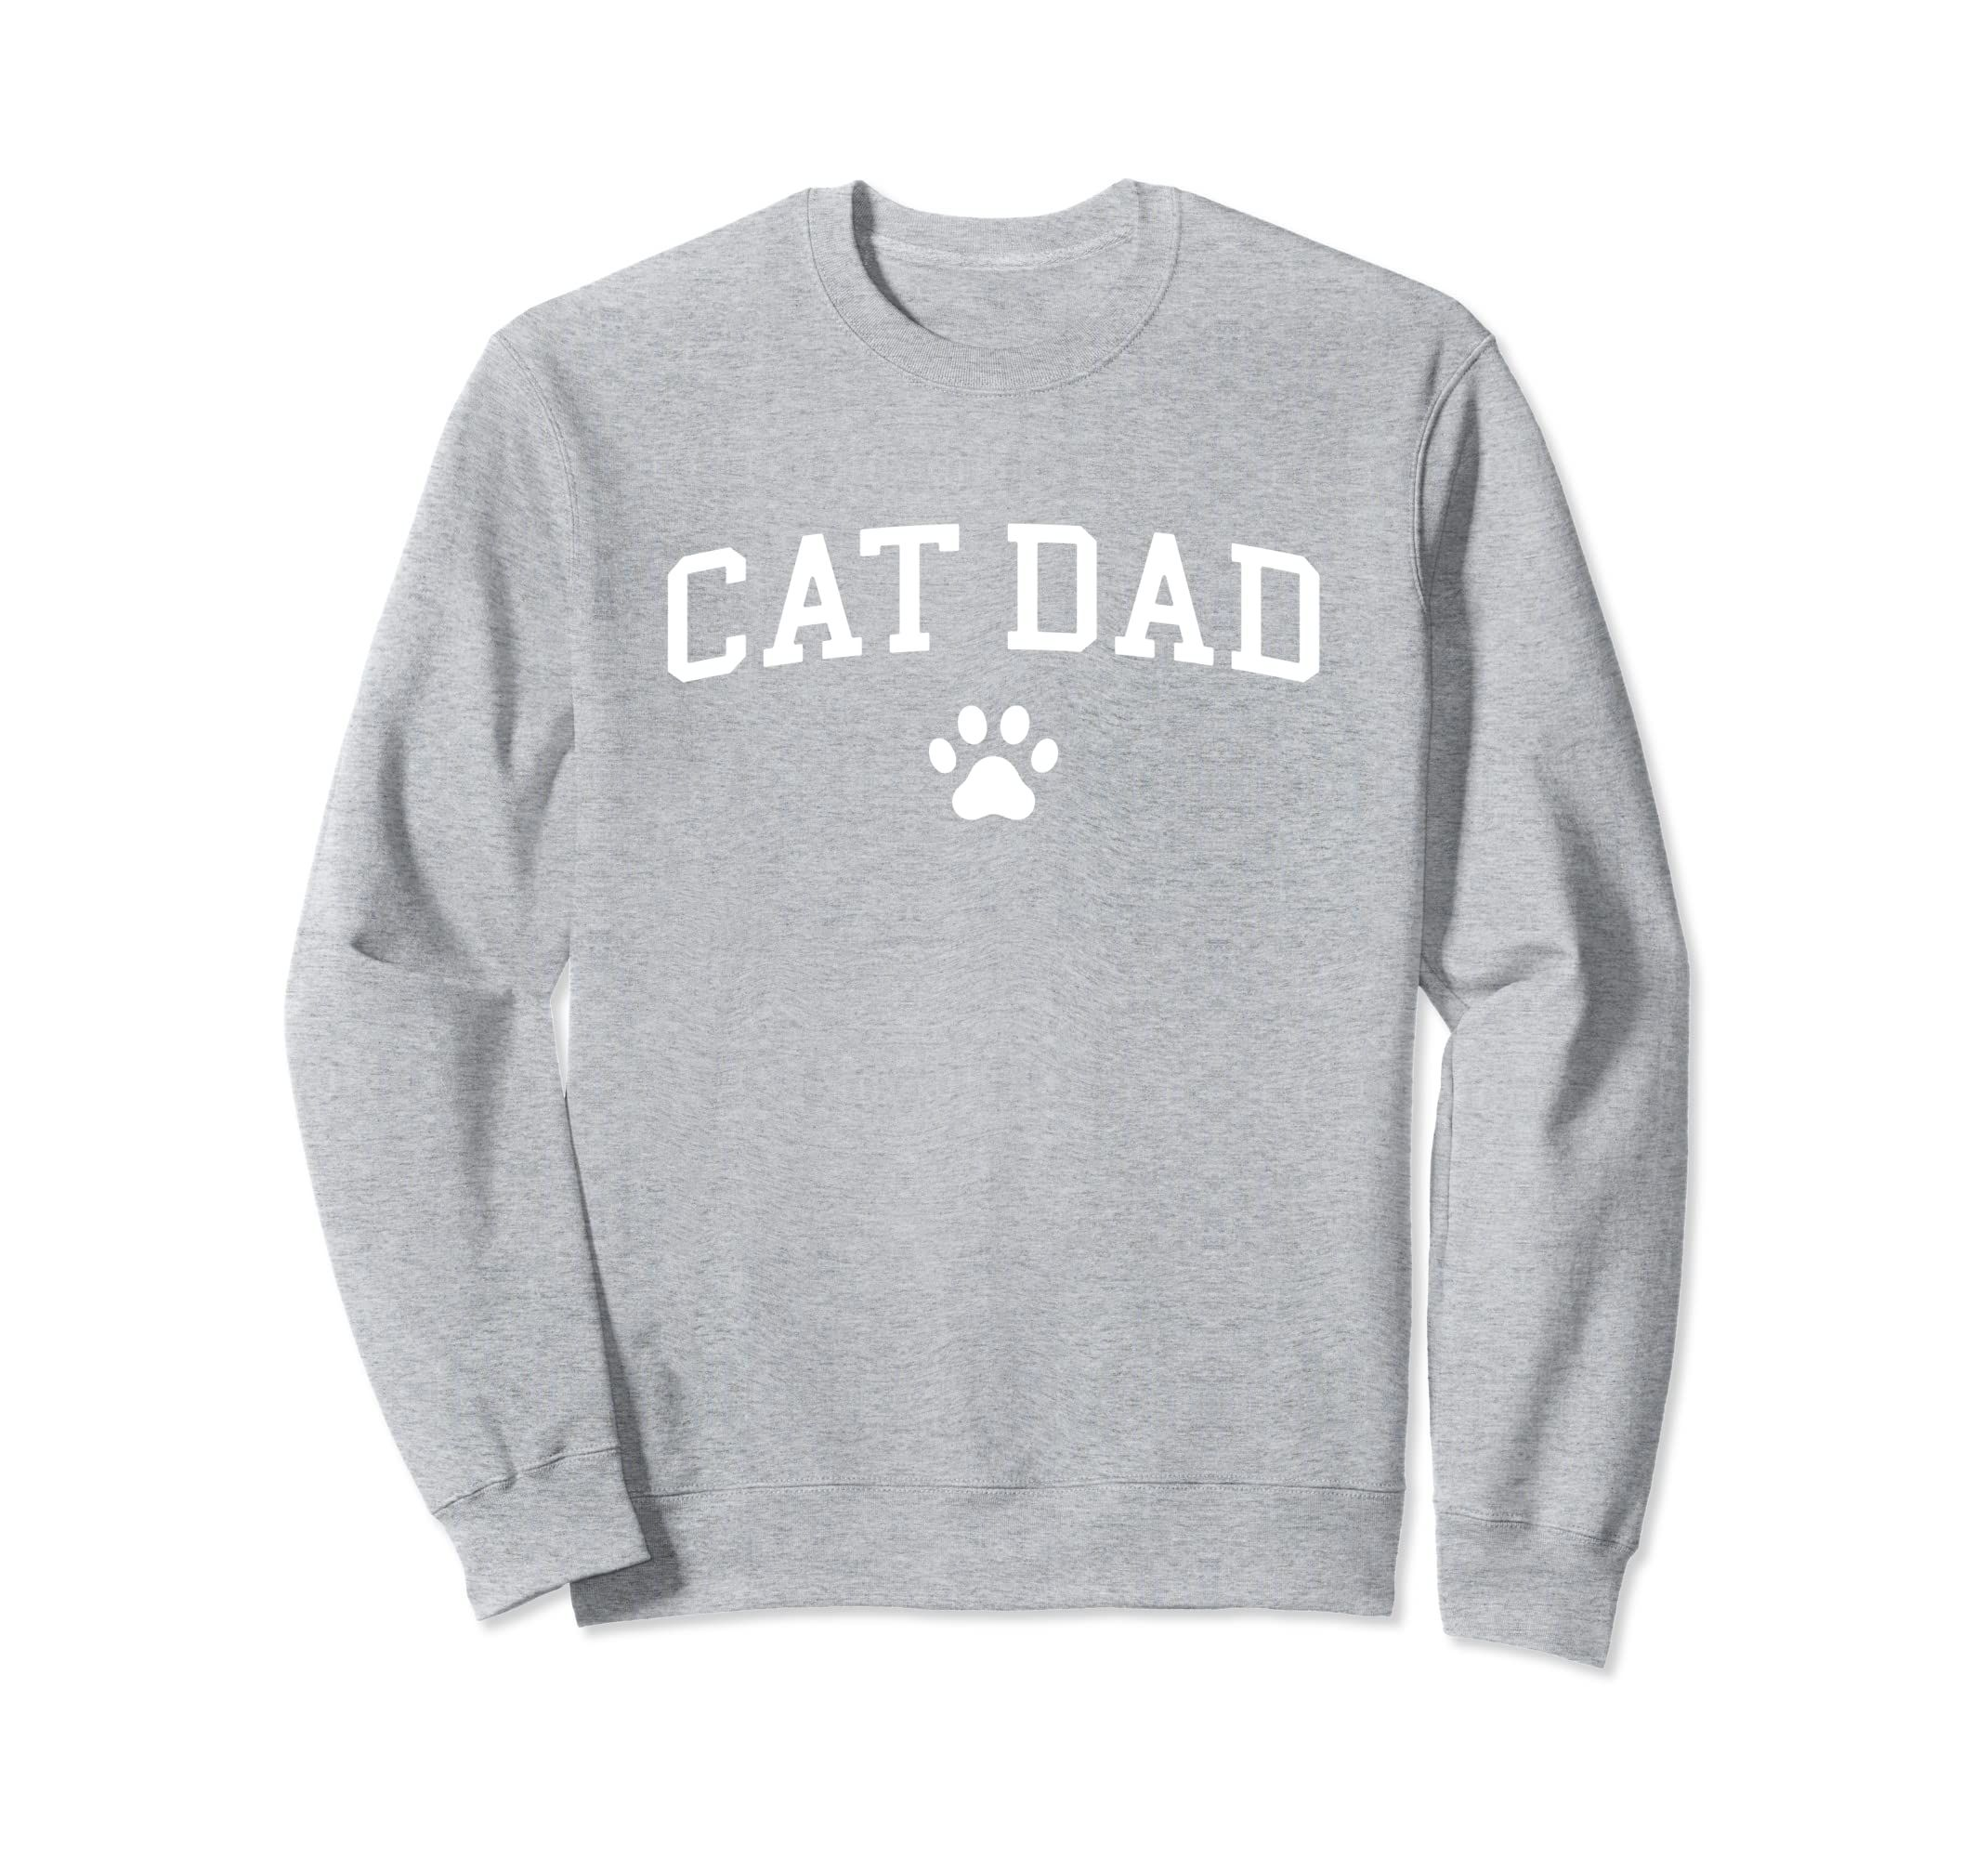 Awesome Cat Dad Sweatshirt For Cat Lovers-Teehay